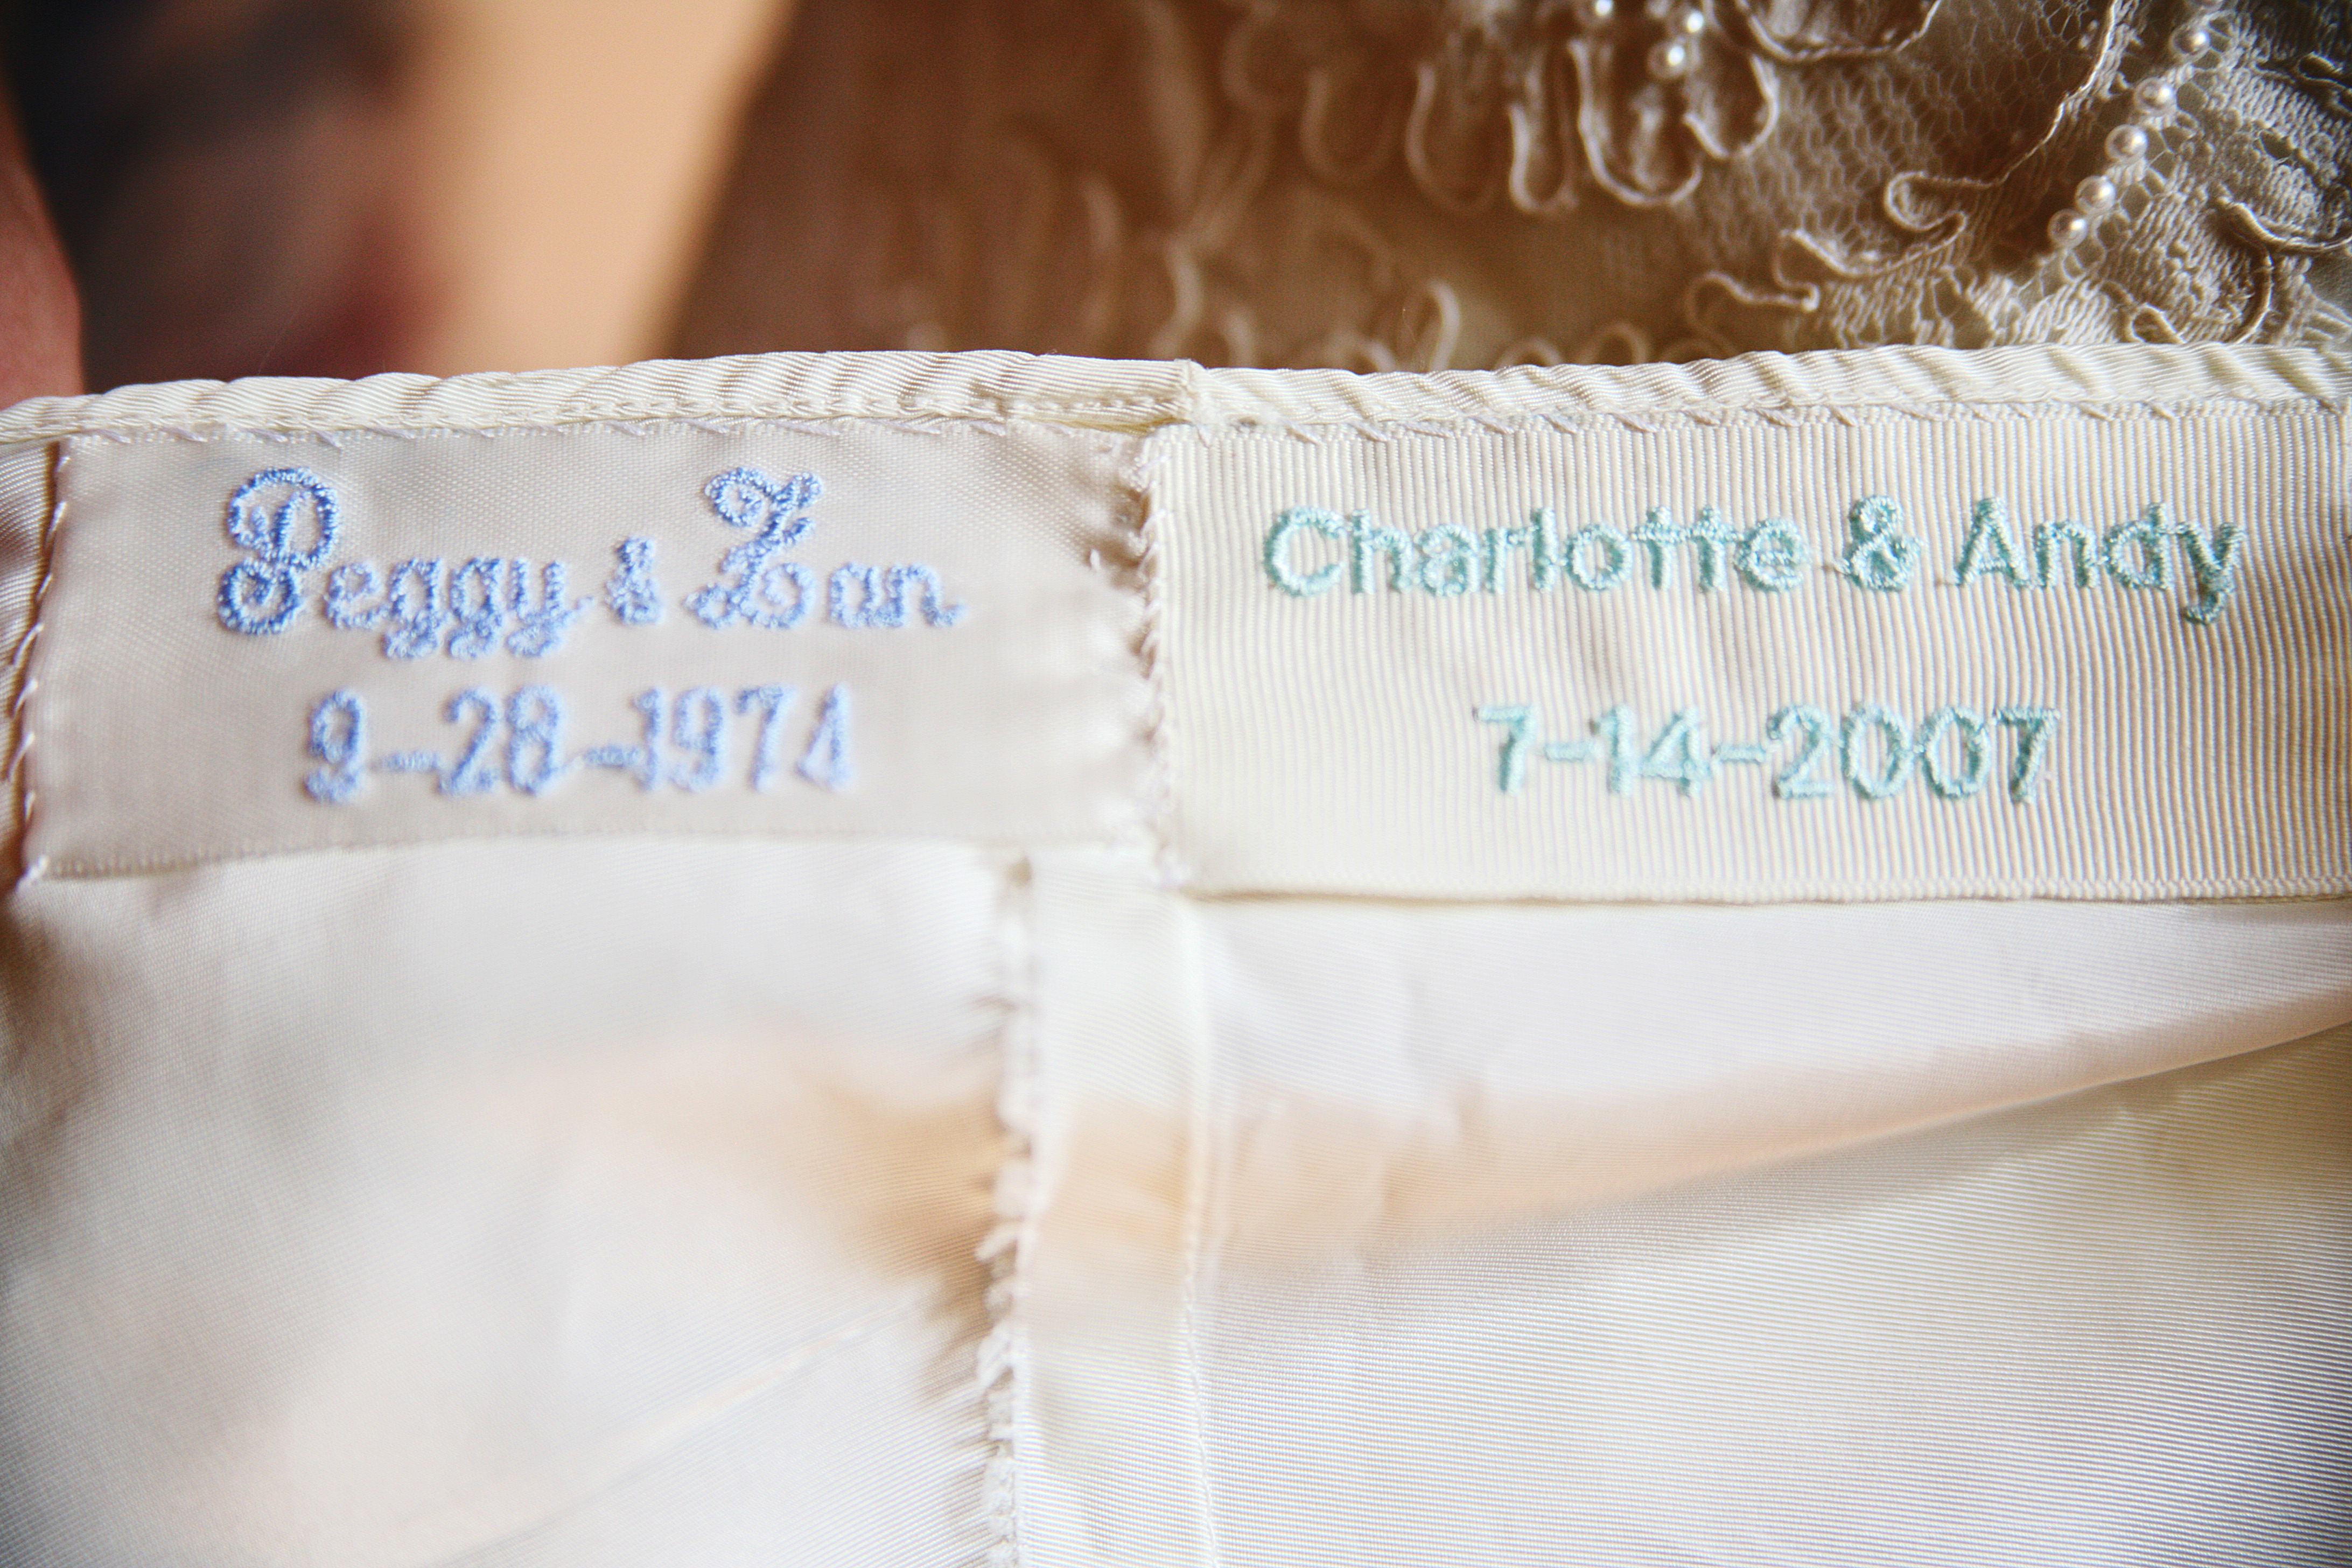 Wedding Dresses, Vintage Wedding Dresses, Fashion, blue, dress, Vintage, Brides, Label, Something